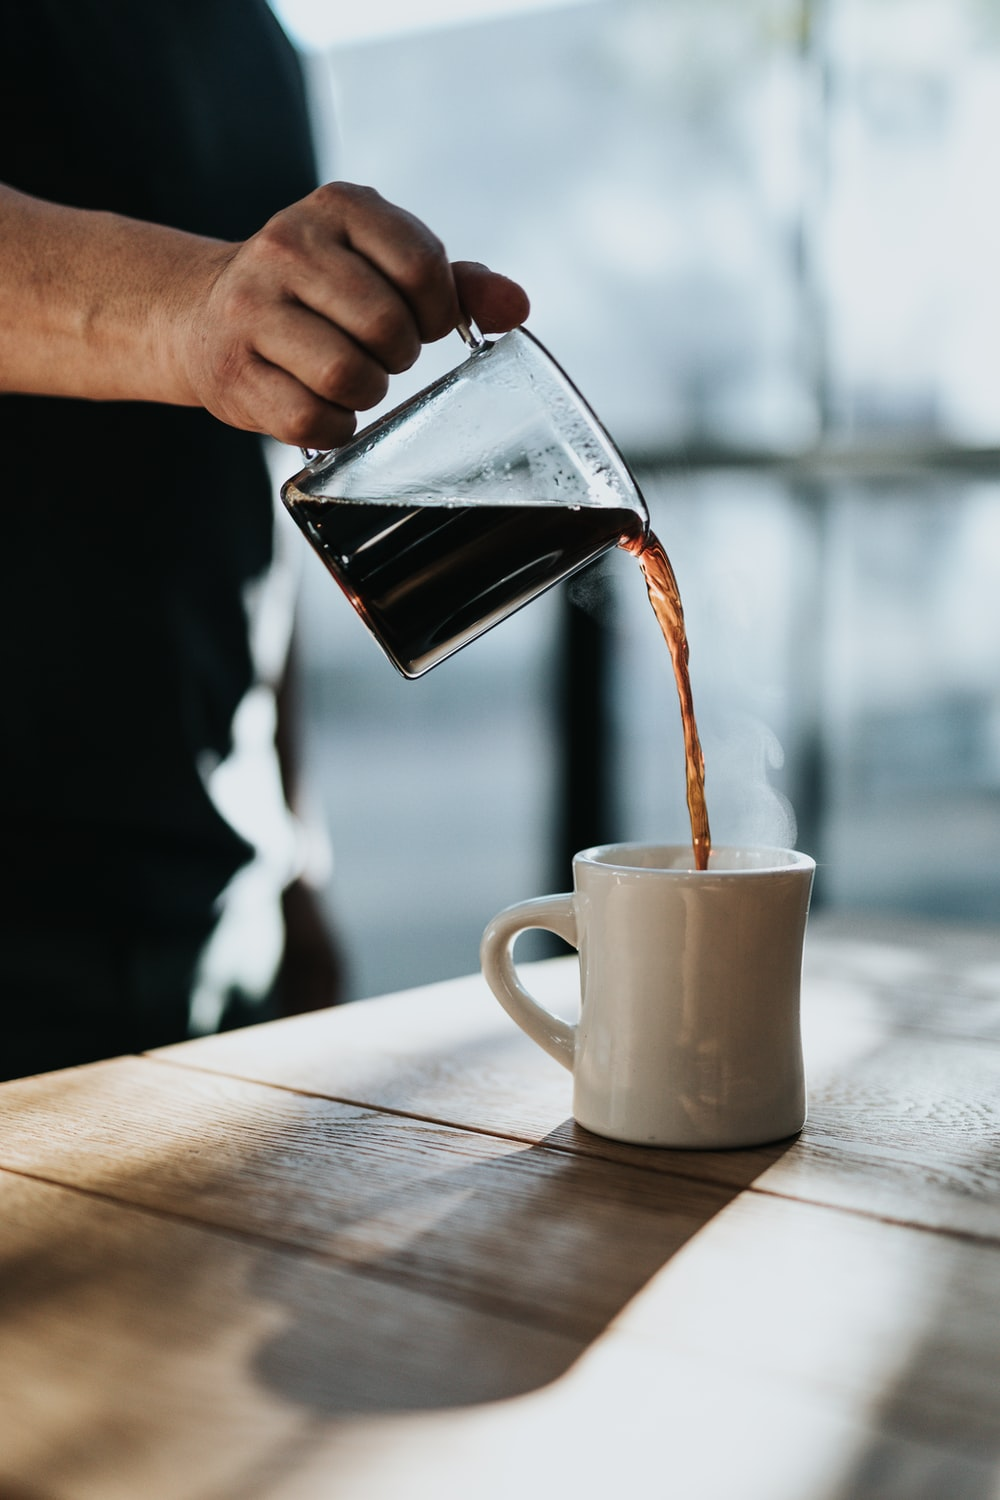 person pouring black coffee in white ceramic mug placed on brown wooden table during daytime